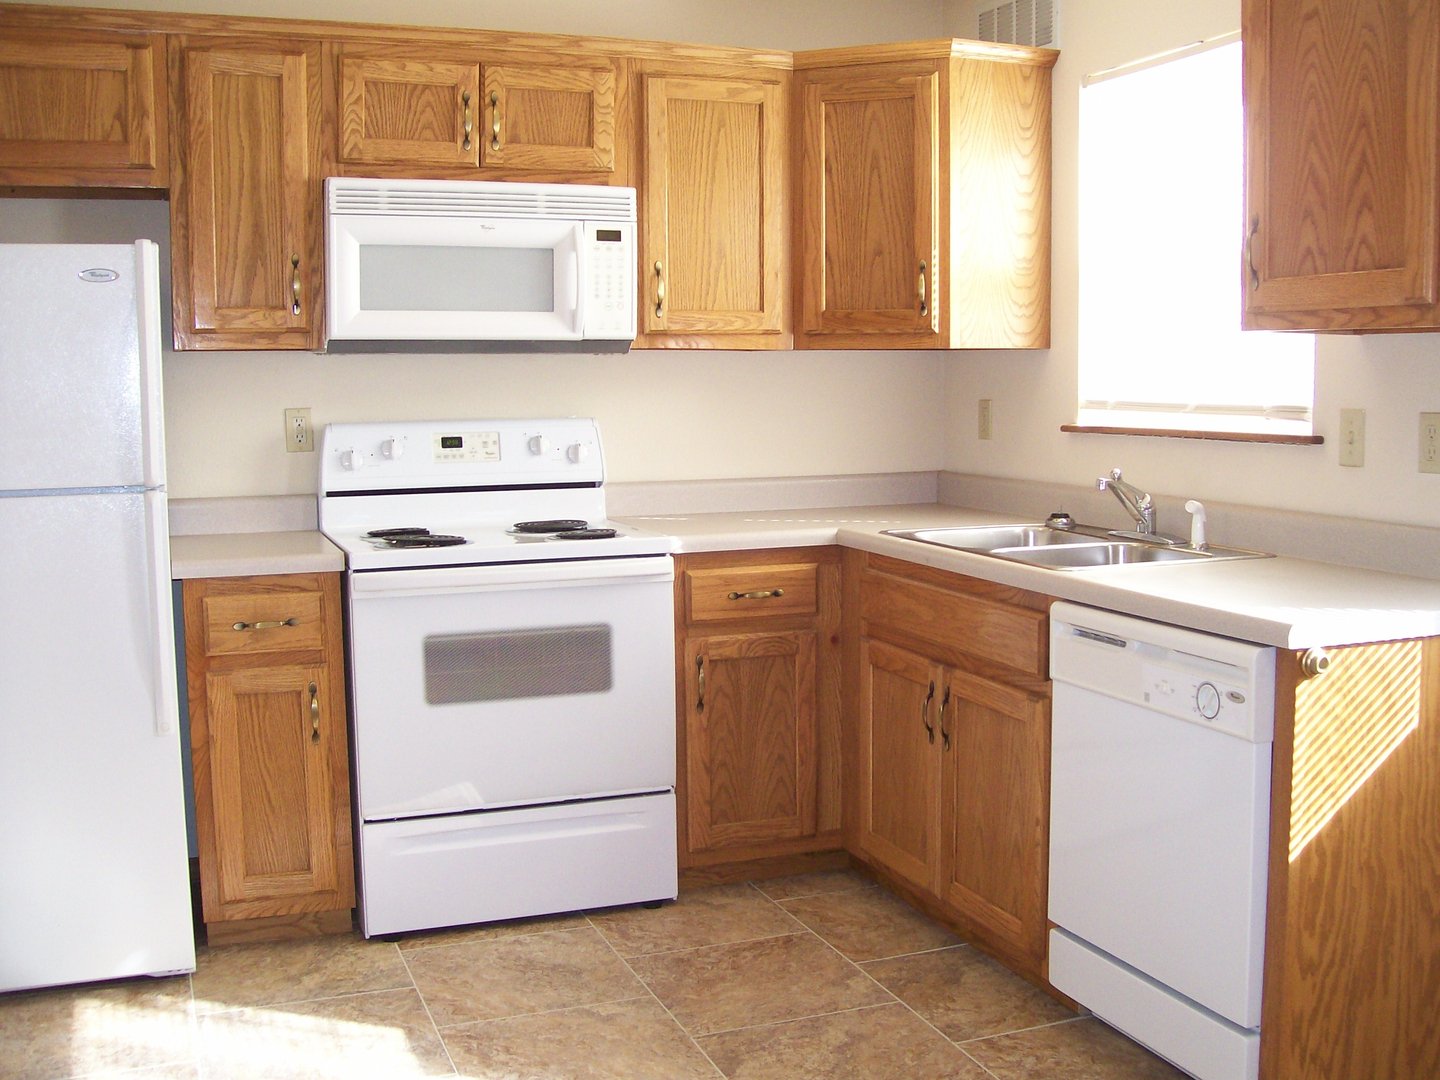 garage realty tx homes marcos for renting and details in with apartments pin pinterest apartment rent san more call